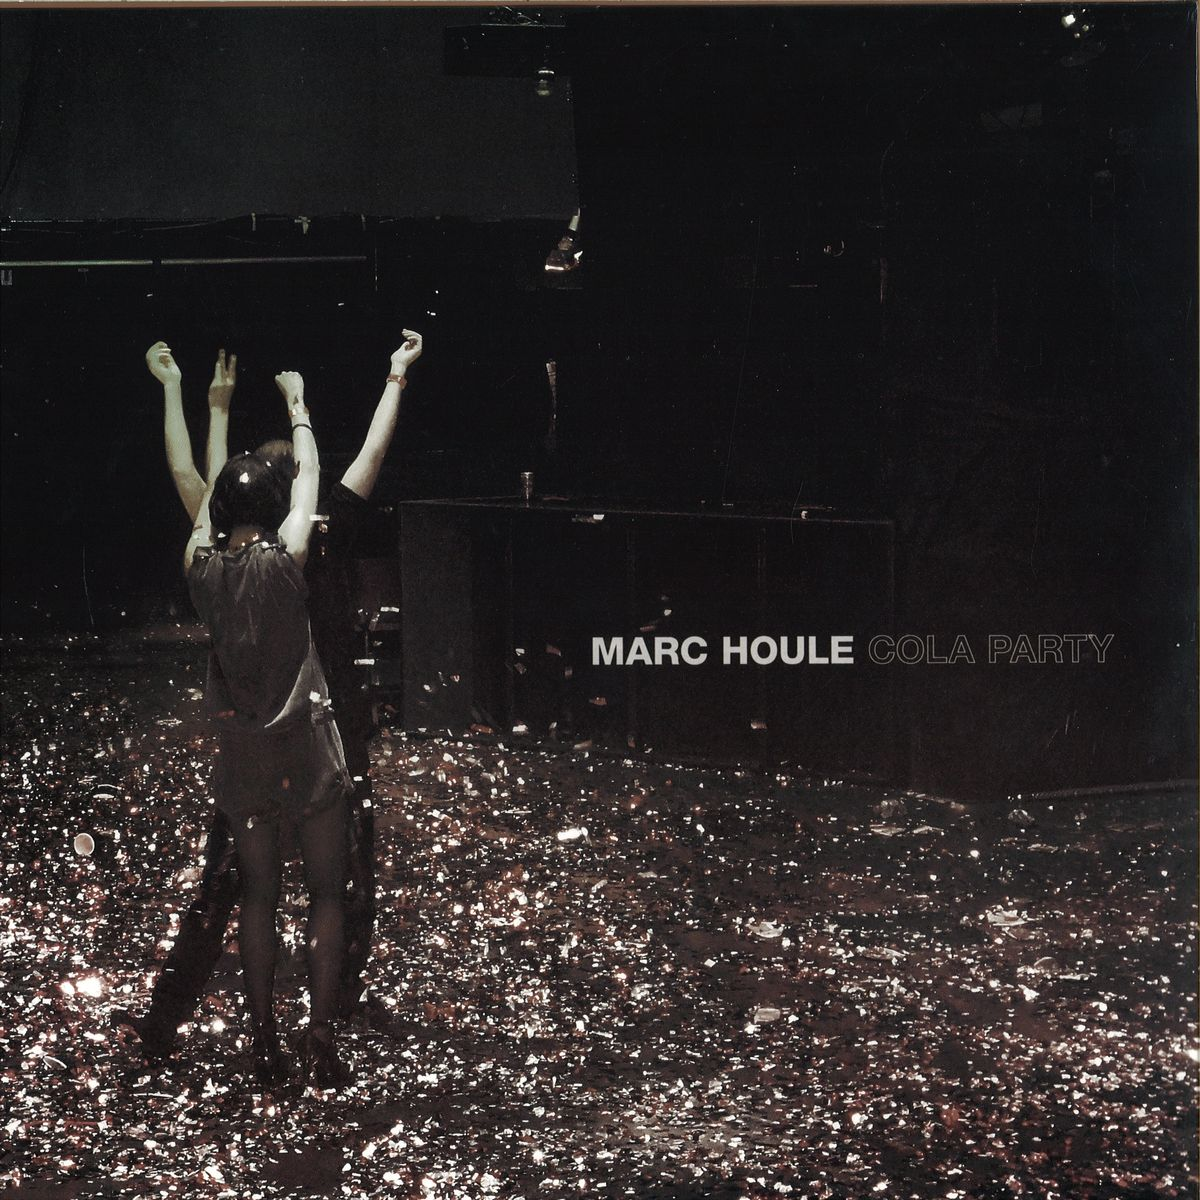 Marc Houle – Cola Party (Item & Things)